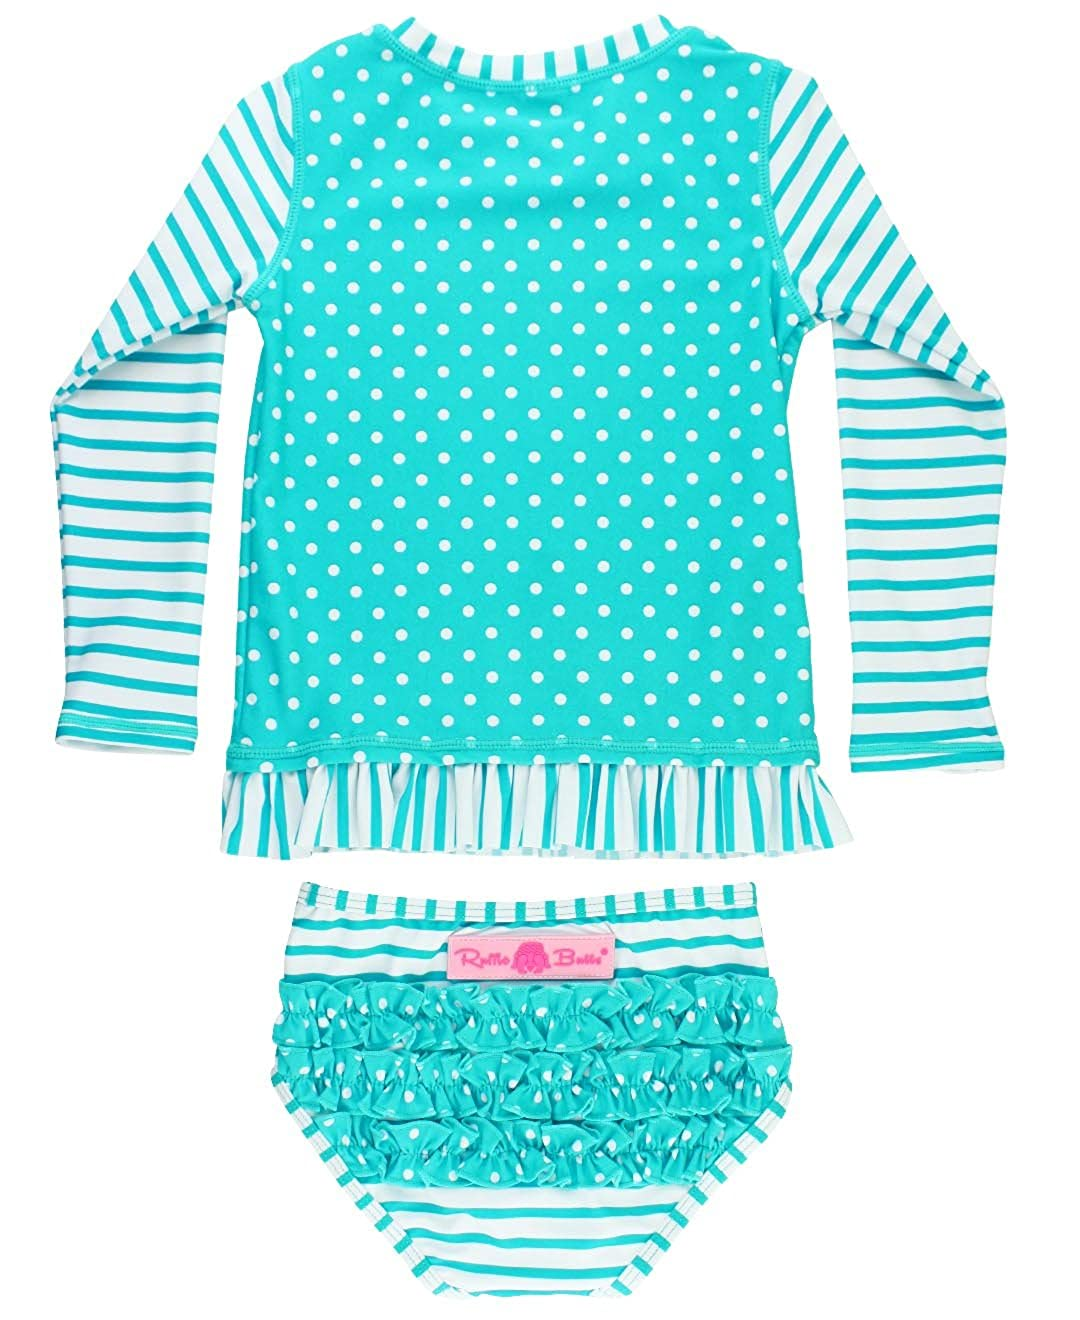 RuffleButts Baby/Toddler Girls Long Sleeve Rash Guard 2-Piece Swimsuit Set - Stripes Polka Dot with UPF 50+ Sun Protection RGSYYXX-LSP2-SC-BABY